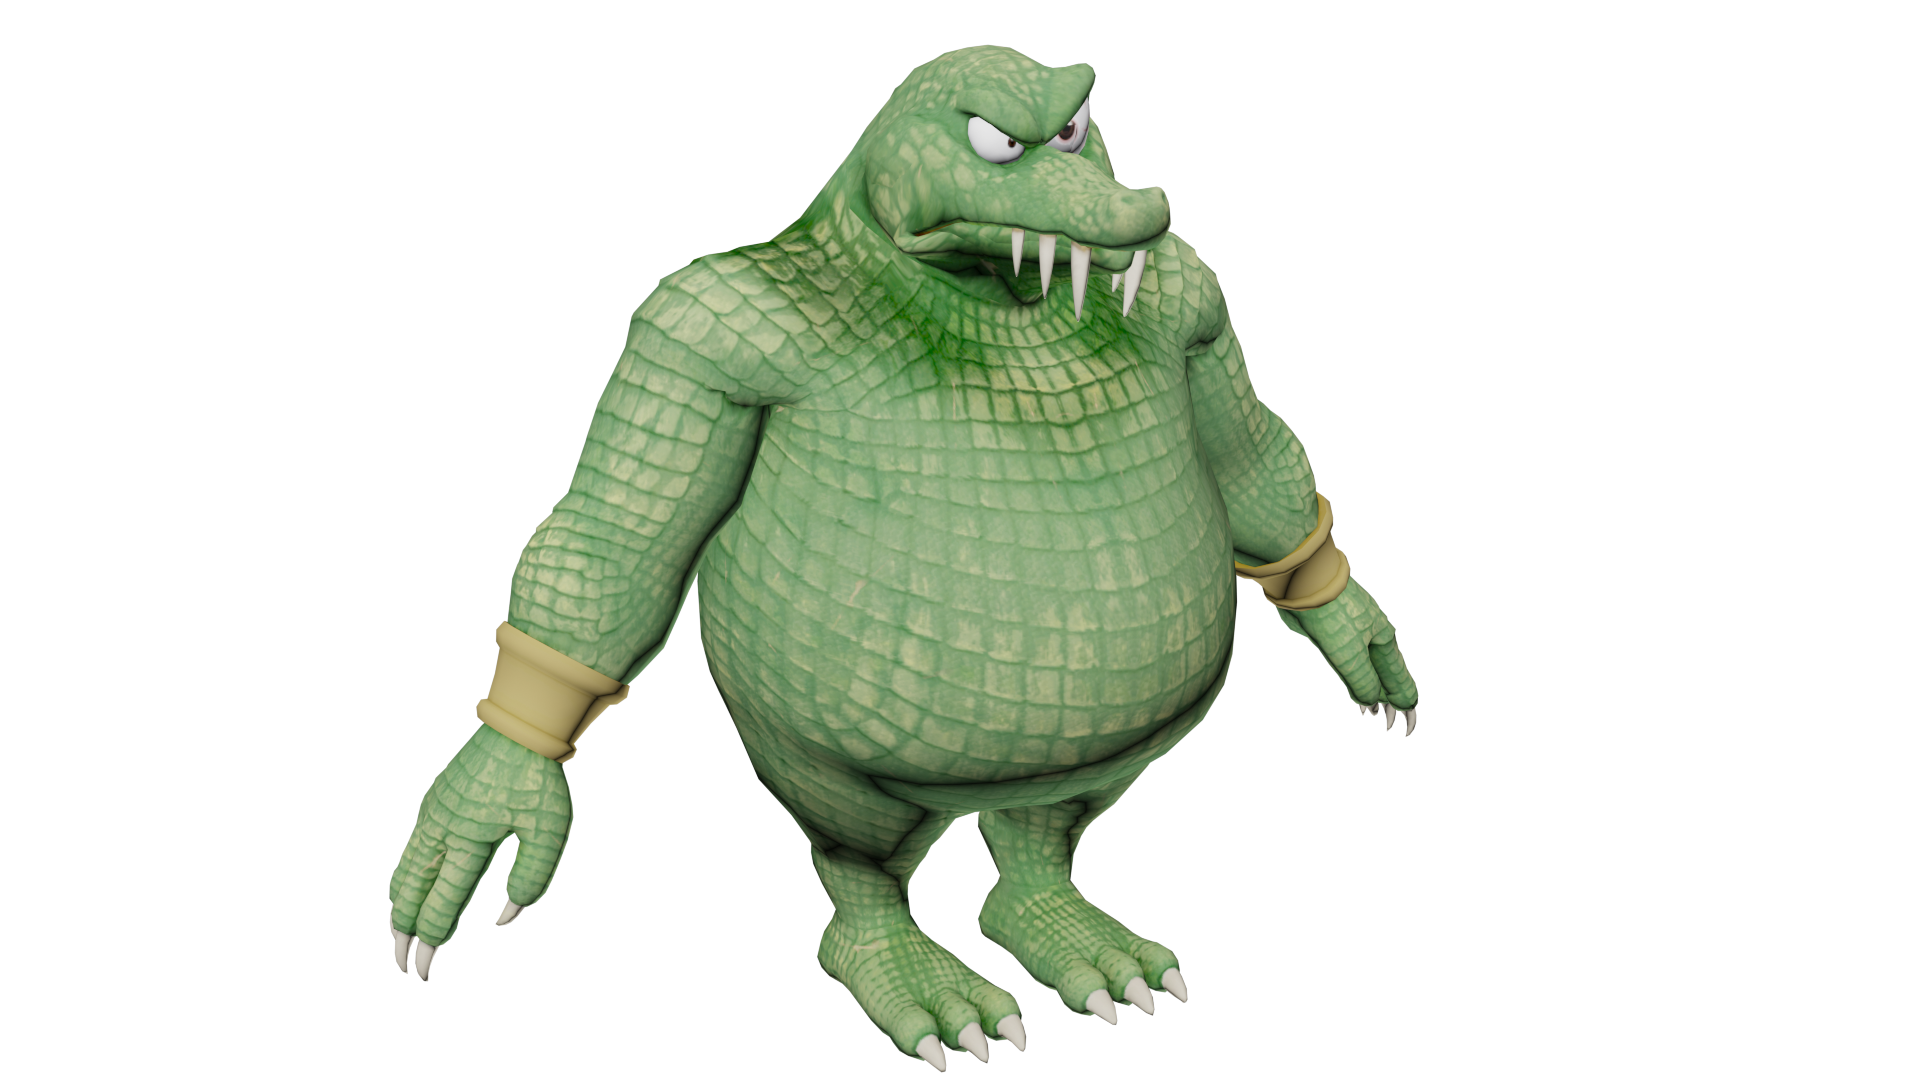 Just wanted to bless this sub with naked King K. Rool.